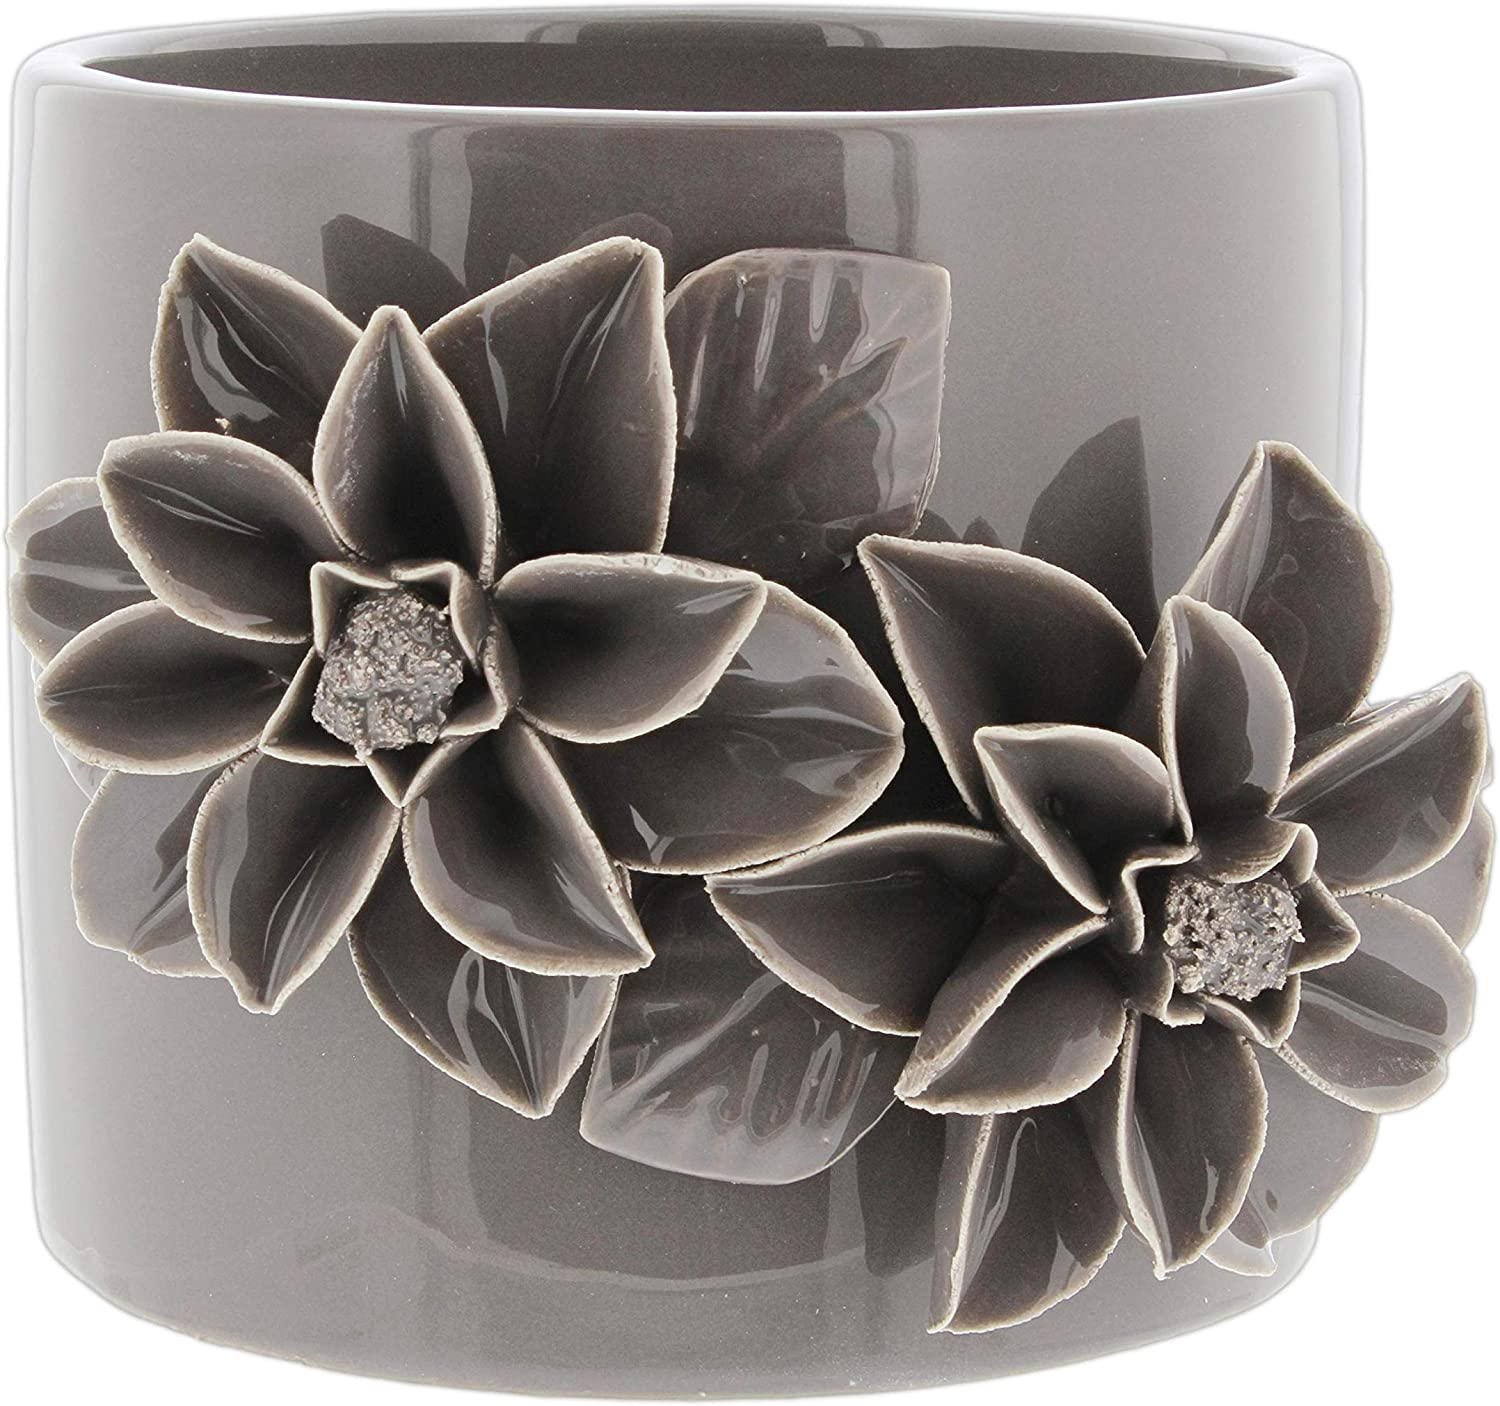 Napco Ceramic Planter with Pop Out Flower Design, 4.5 Grey